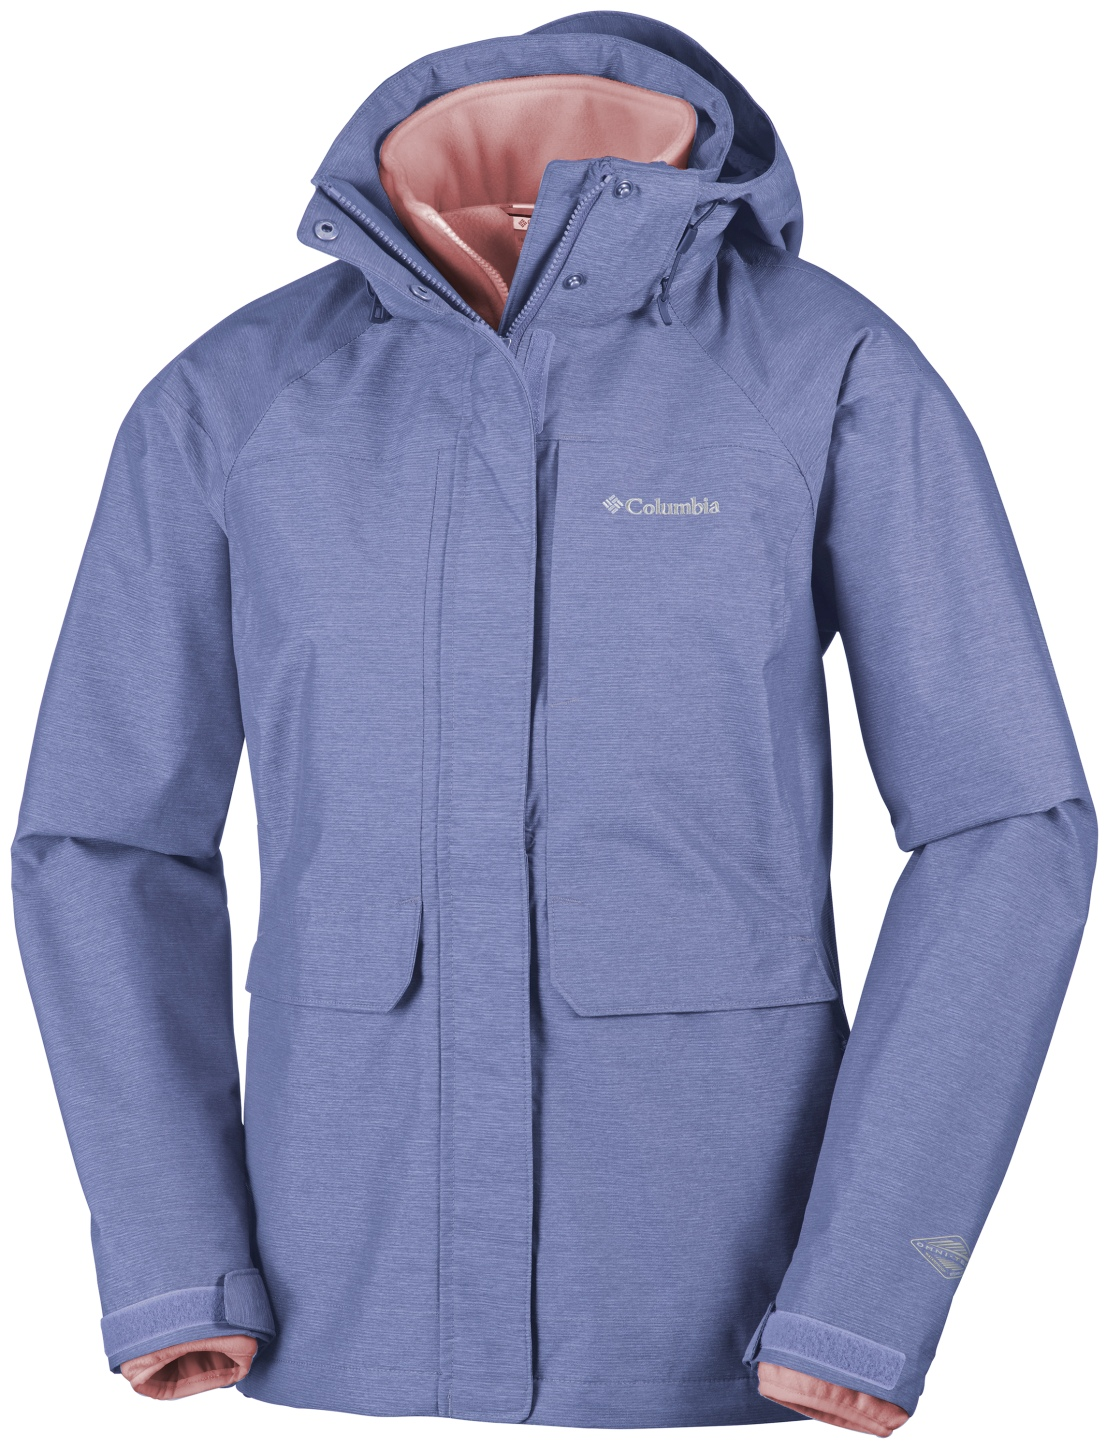 Columbia Mystic Pines Variable Ski-Jacke für Damen Bluebell Cross Dye-30